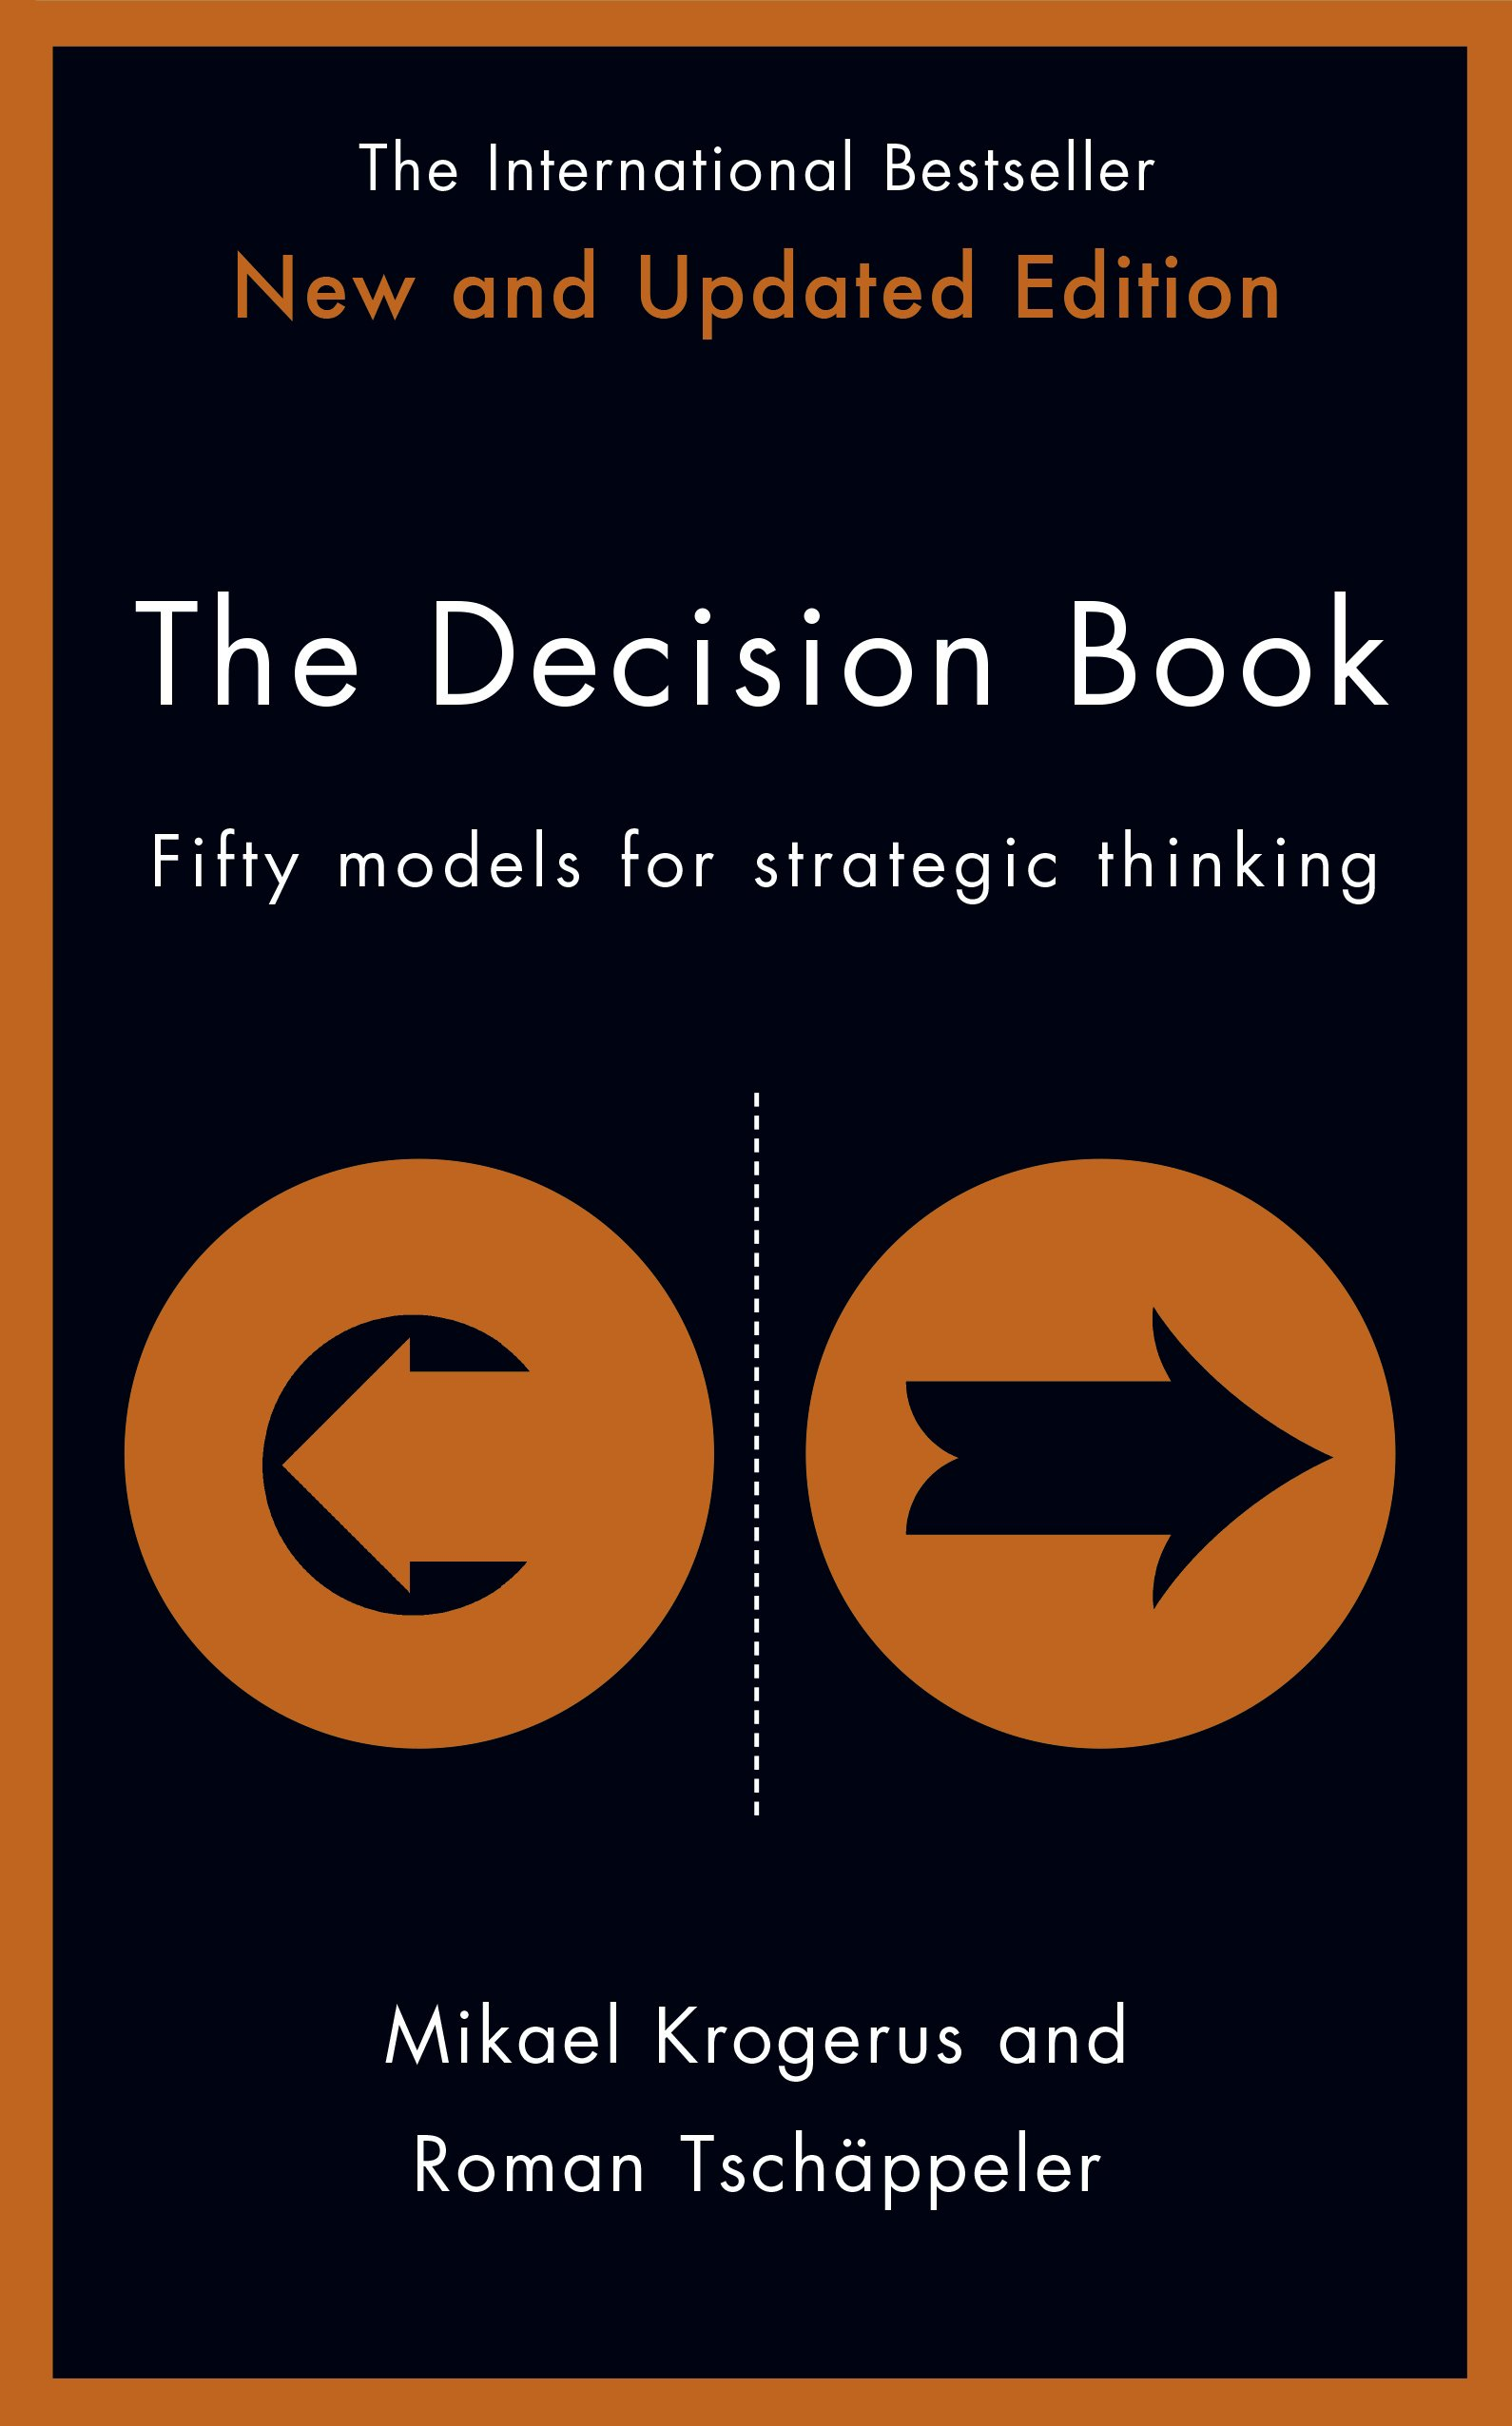 Recommendation - The Decision Book